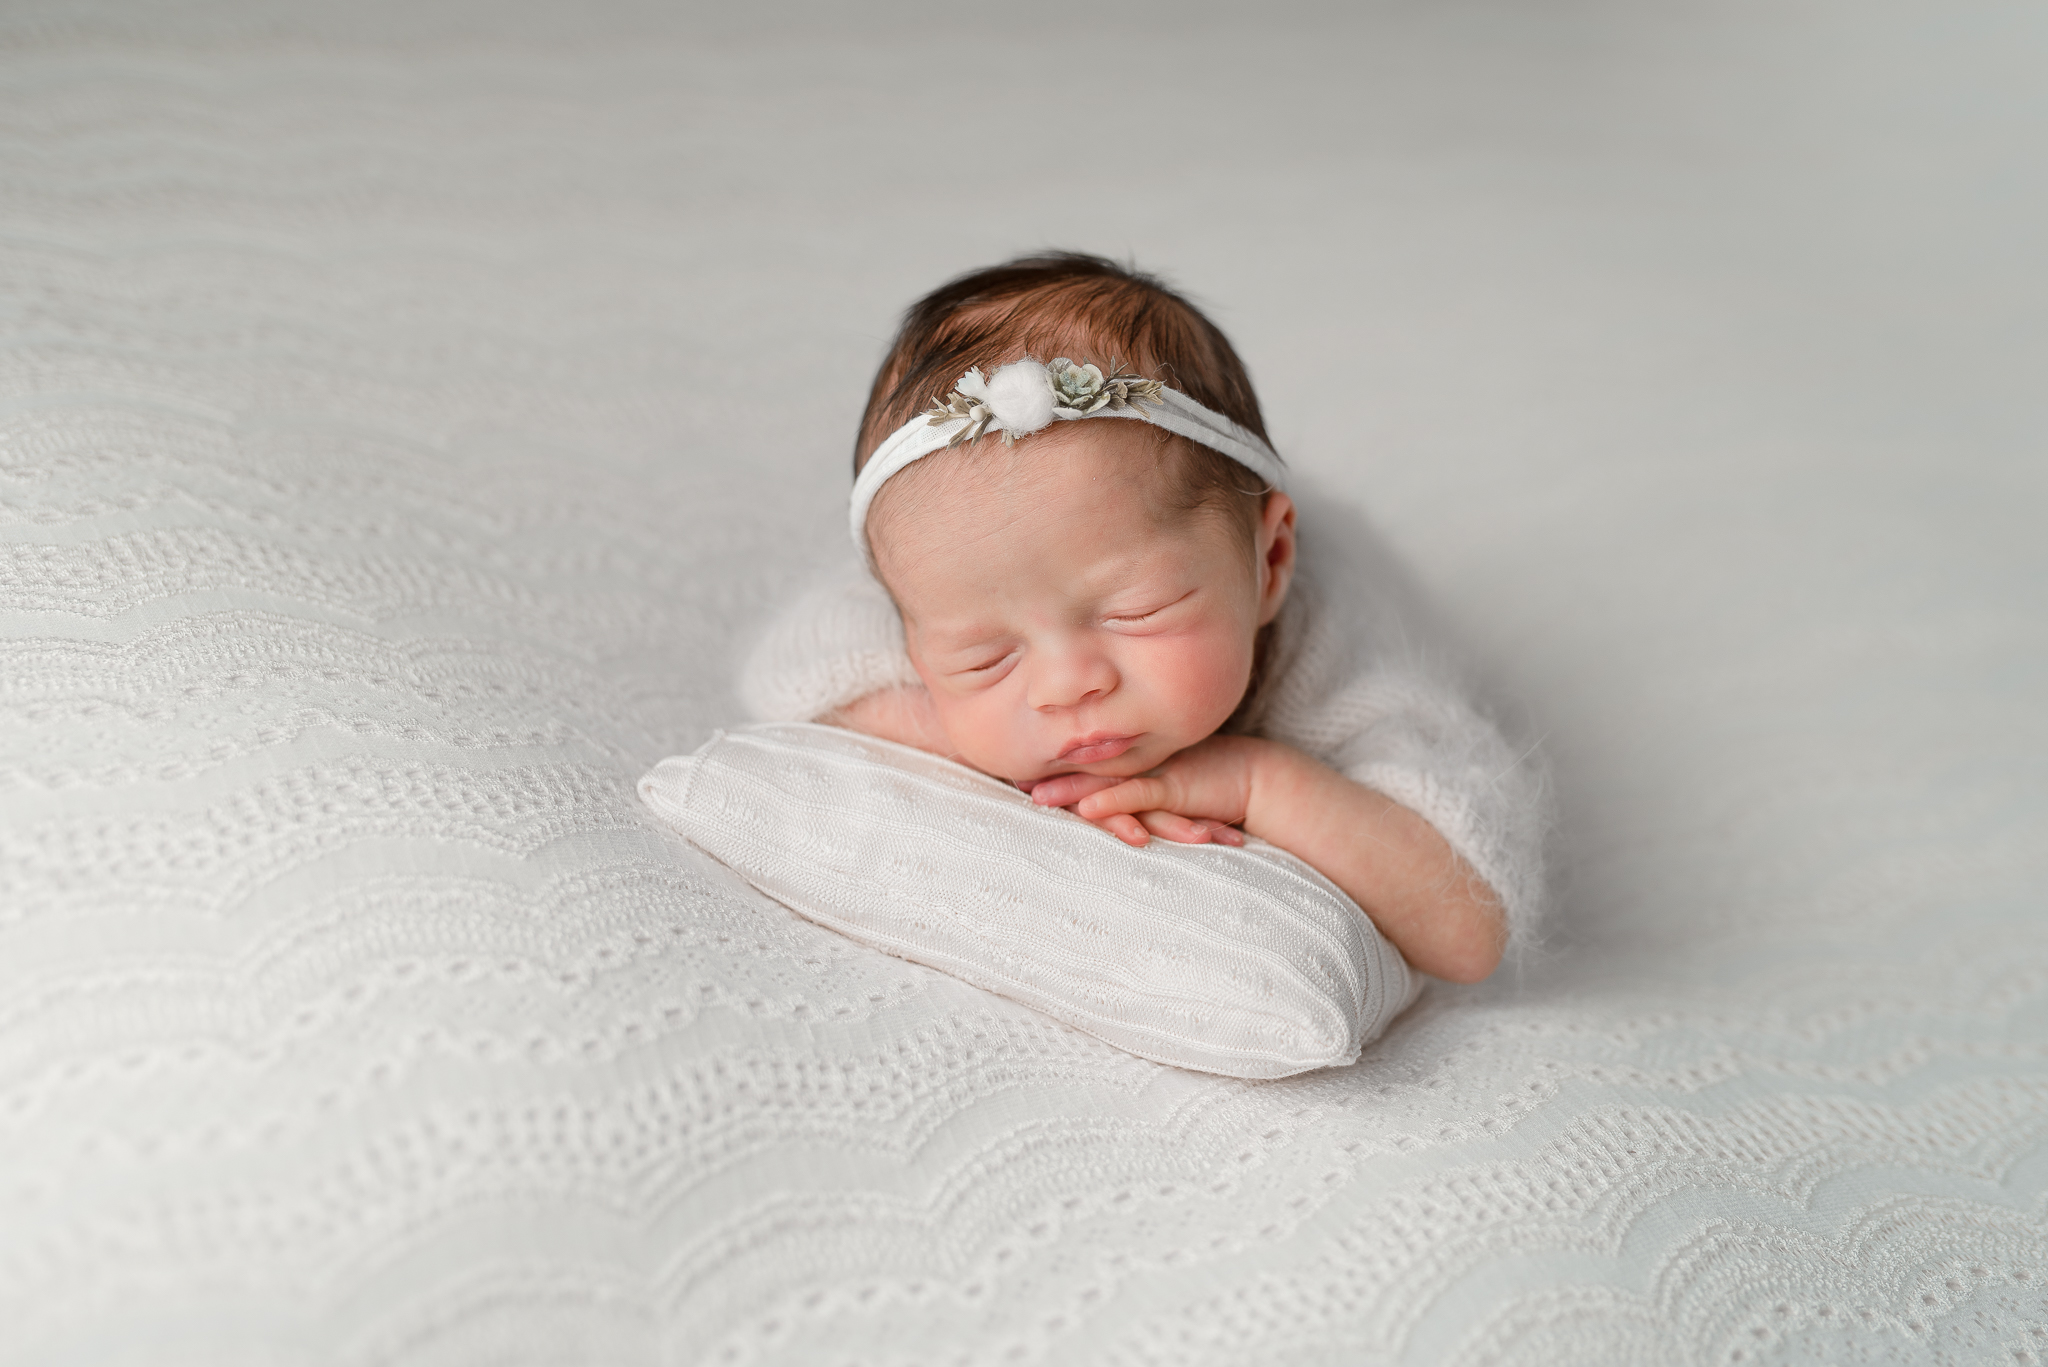 Newborn199NaomiLuciennePhotography032019-Edit.jpg